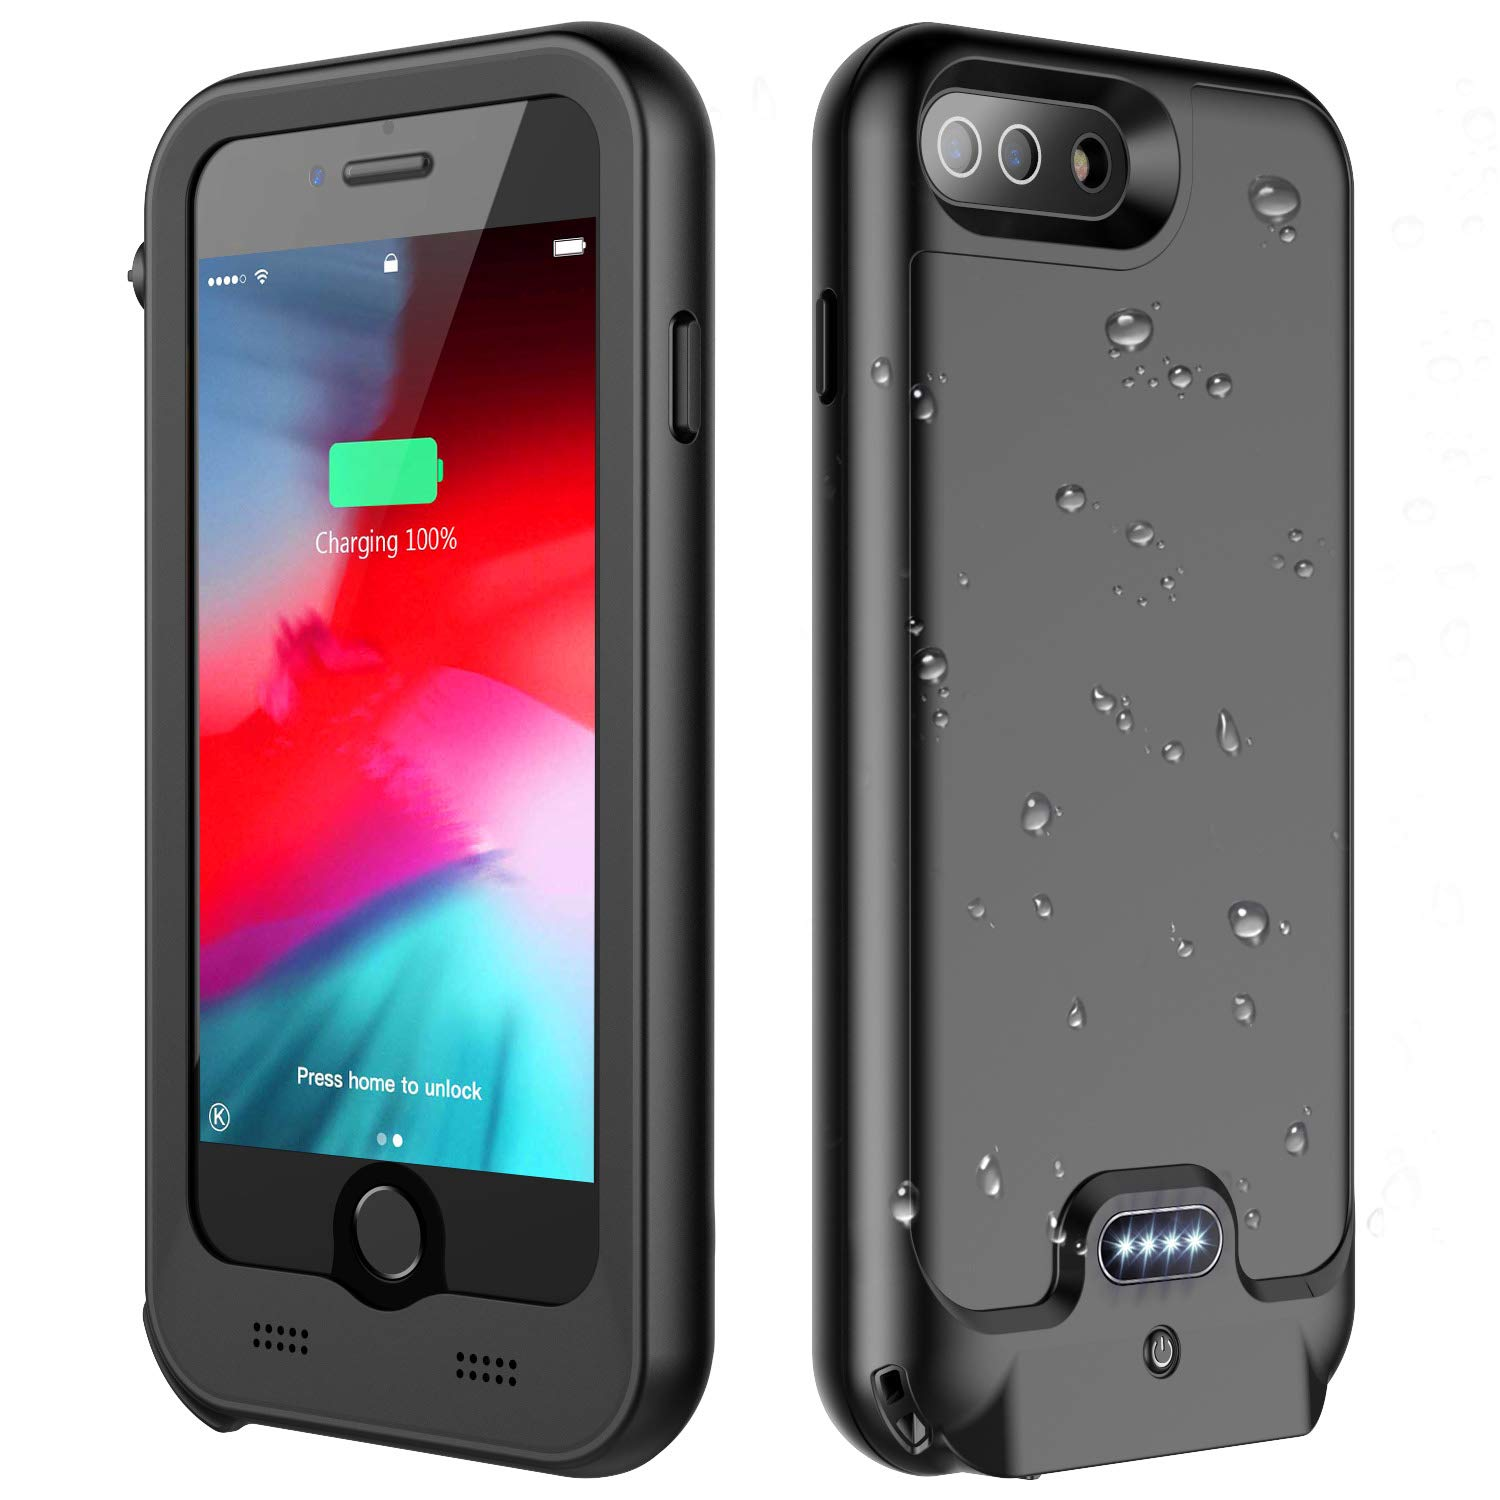 quality design 22922 74a2e iPhone 7 Plus / 8 Plus Battery Case, ATOP 4800mAh Full-Body Rugged Charger  Case with Built-in Screen Protector Compatible QI Wireless Charging IPX5 ...